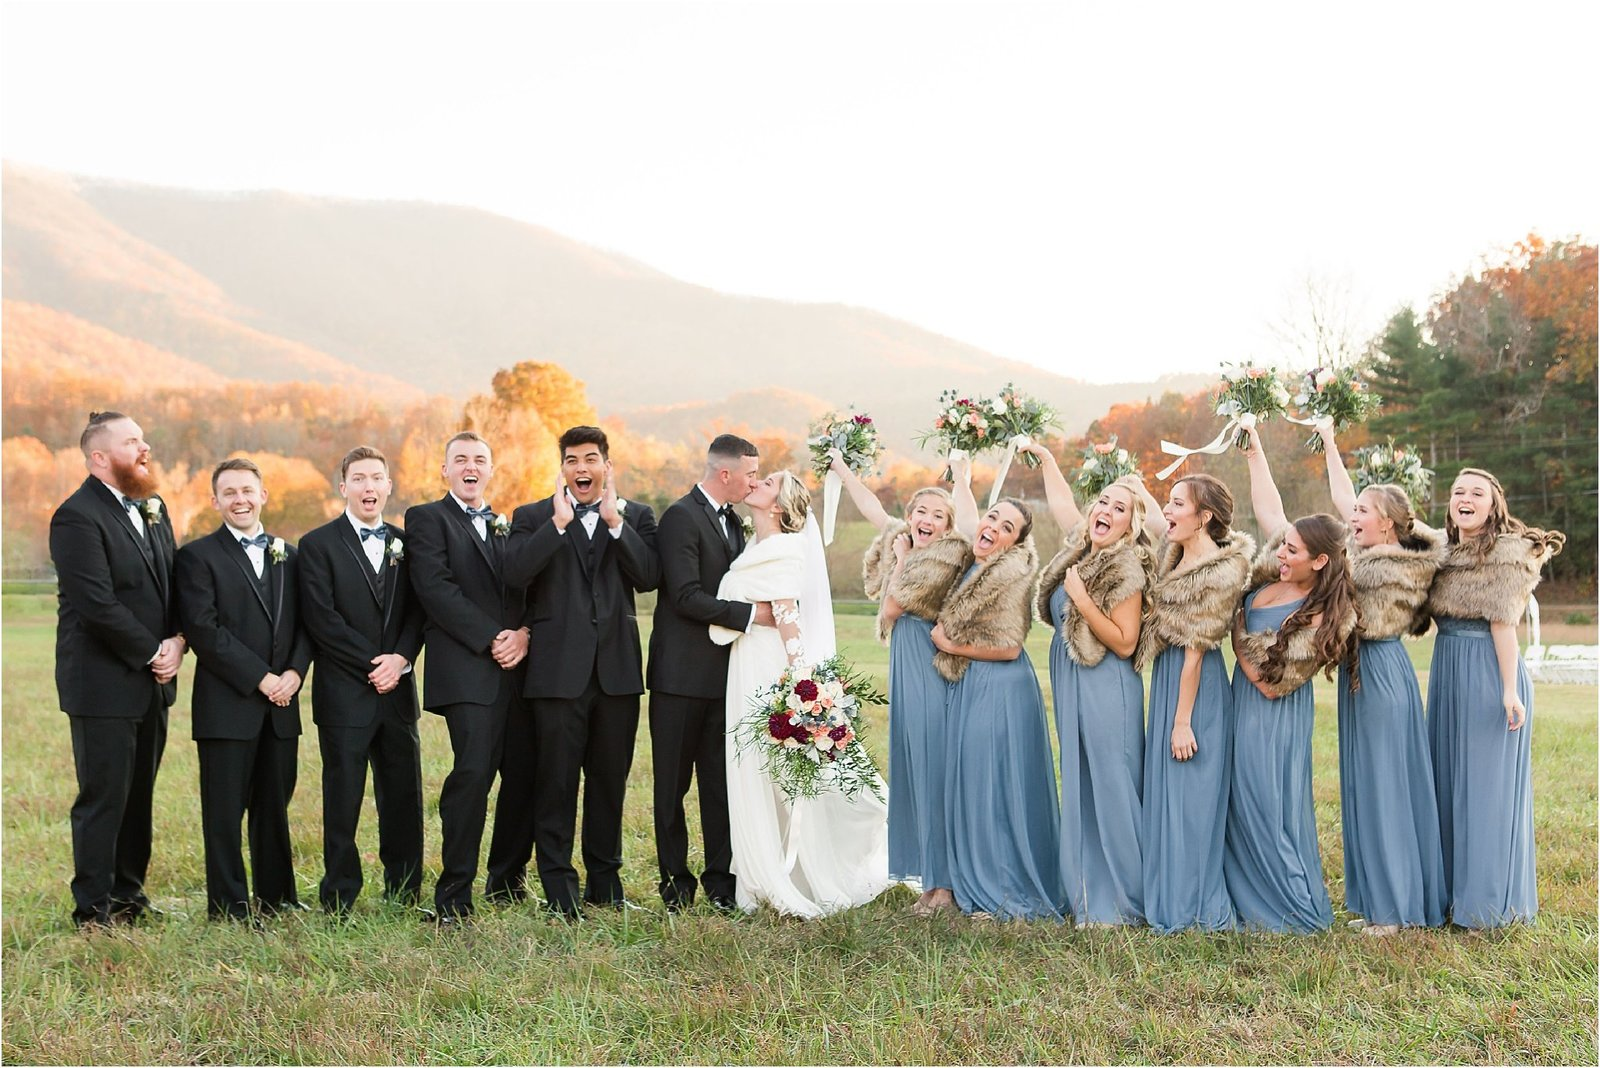 akingslodgeweddingpigeonforgeweddingsmokymountainsweddingmikayleeandian102158